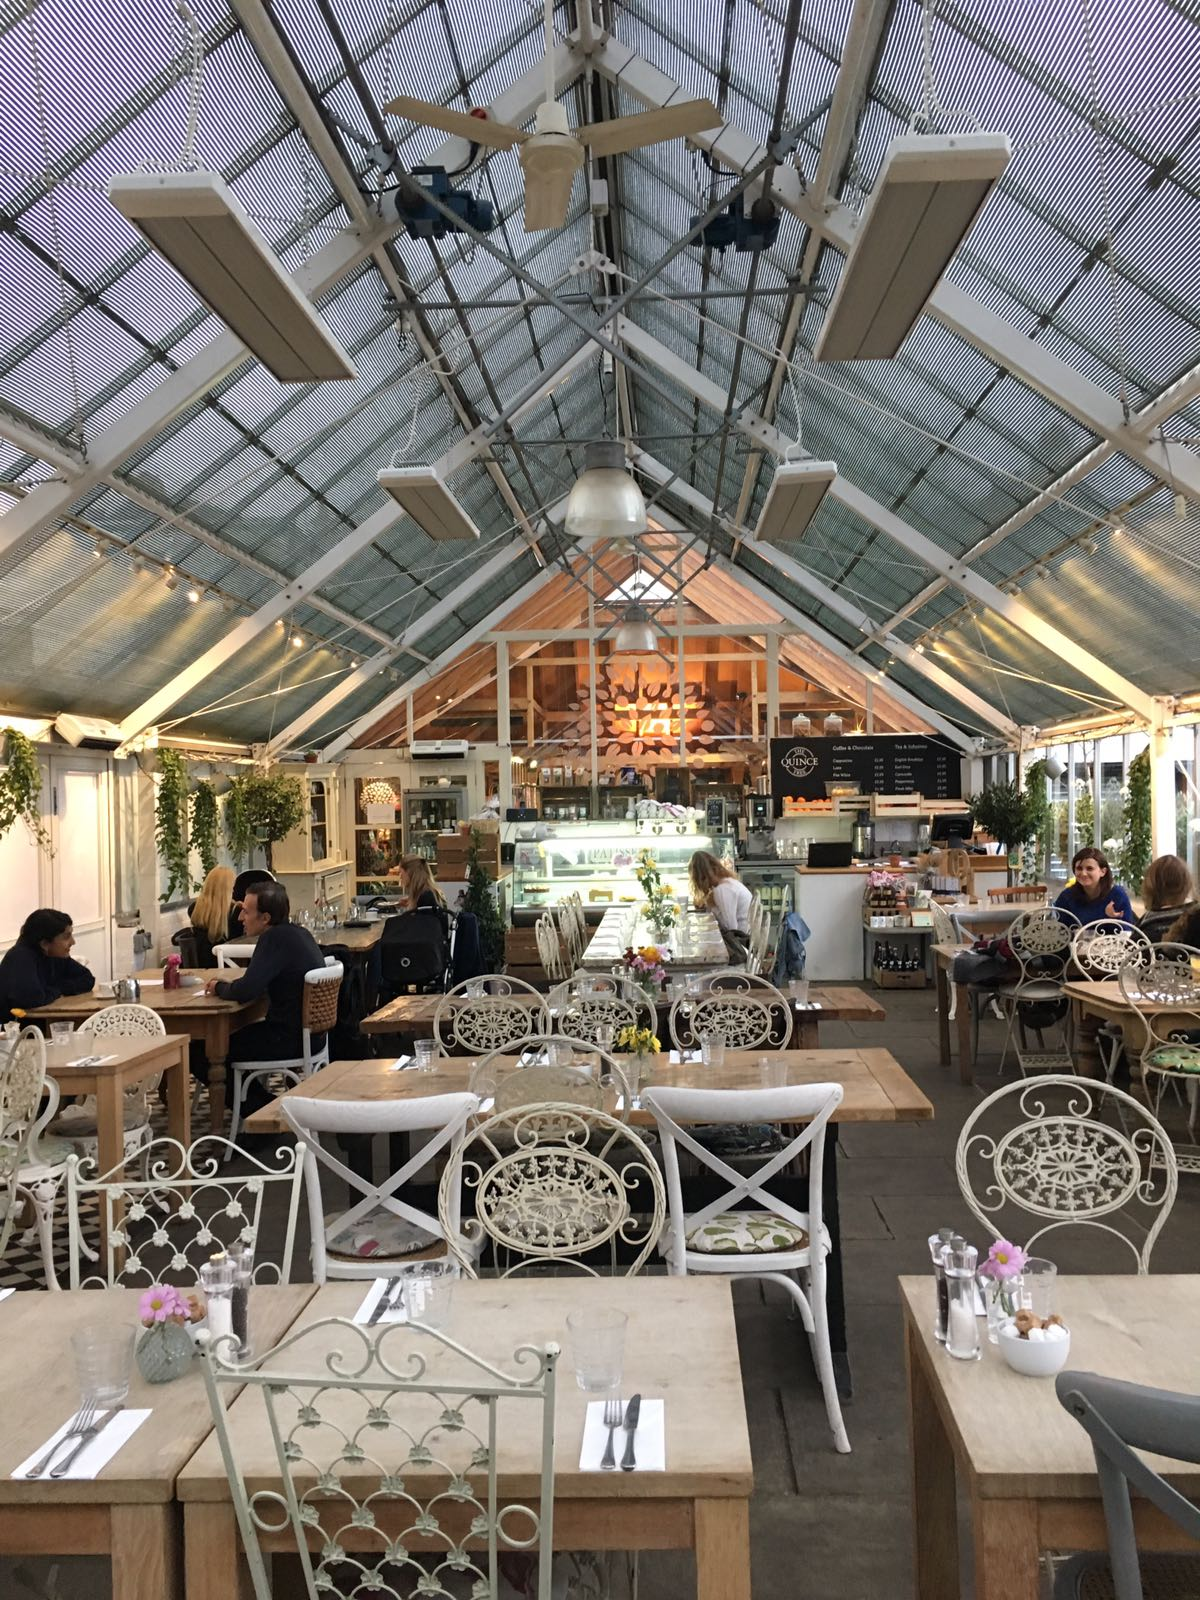 The Quince Tree Cafe, Clifton Nurseries, London